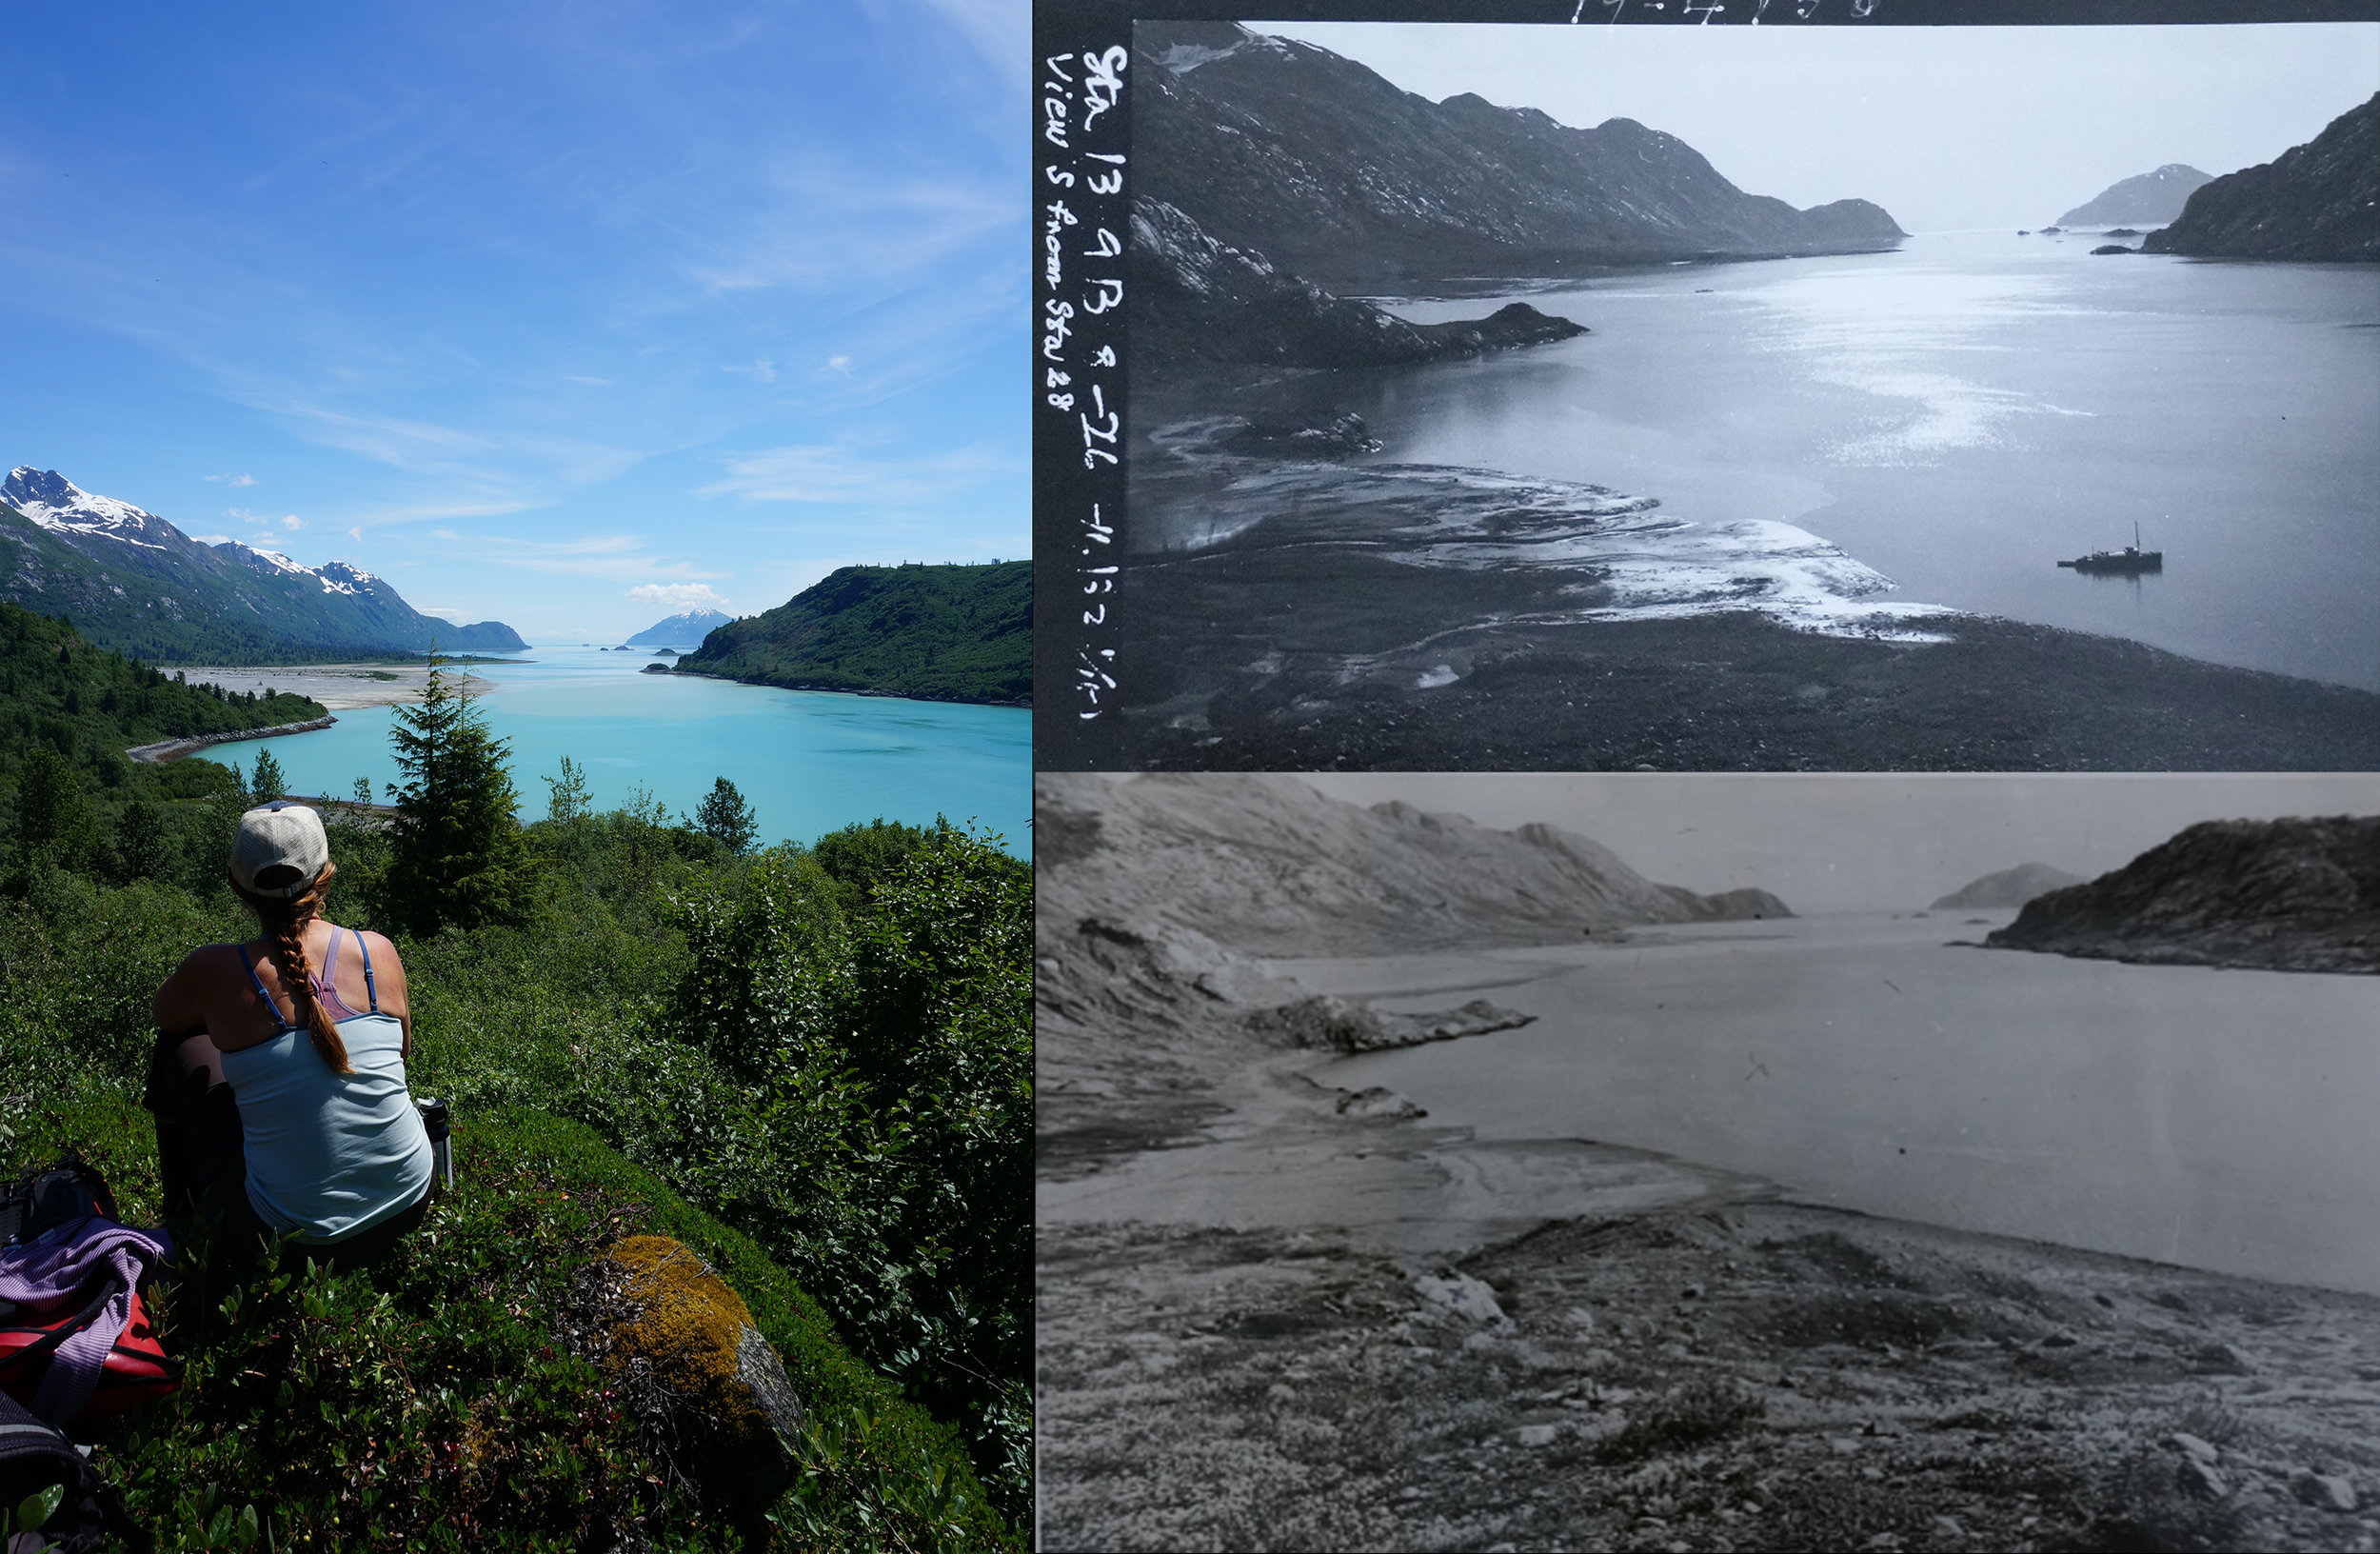 Dr. Sarah Bisbing sits on Arrow Rock, one of the key navigational points from 1916.  Comparative images from 1926 (top right) and 1941 (likely) are shown.  Interesting factoid - the modern 2016 picture has >3000 people in it.  Look close and you can see a cruise ship in the background, a very different reality from what Cooper found in 1916.  Also, note how different the alluvial fan in the background is.  The photos are from the same location, but in 1926 the fan was much, much smaller (and in 1941).  That isn't tidal.  It's a combination of the fan growing (it's quite shallow right off the edge, makes for some interesting kayaking) and isostatic rebound, which is very rapid in this portion of the bay.